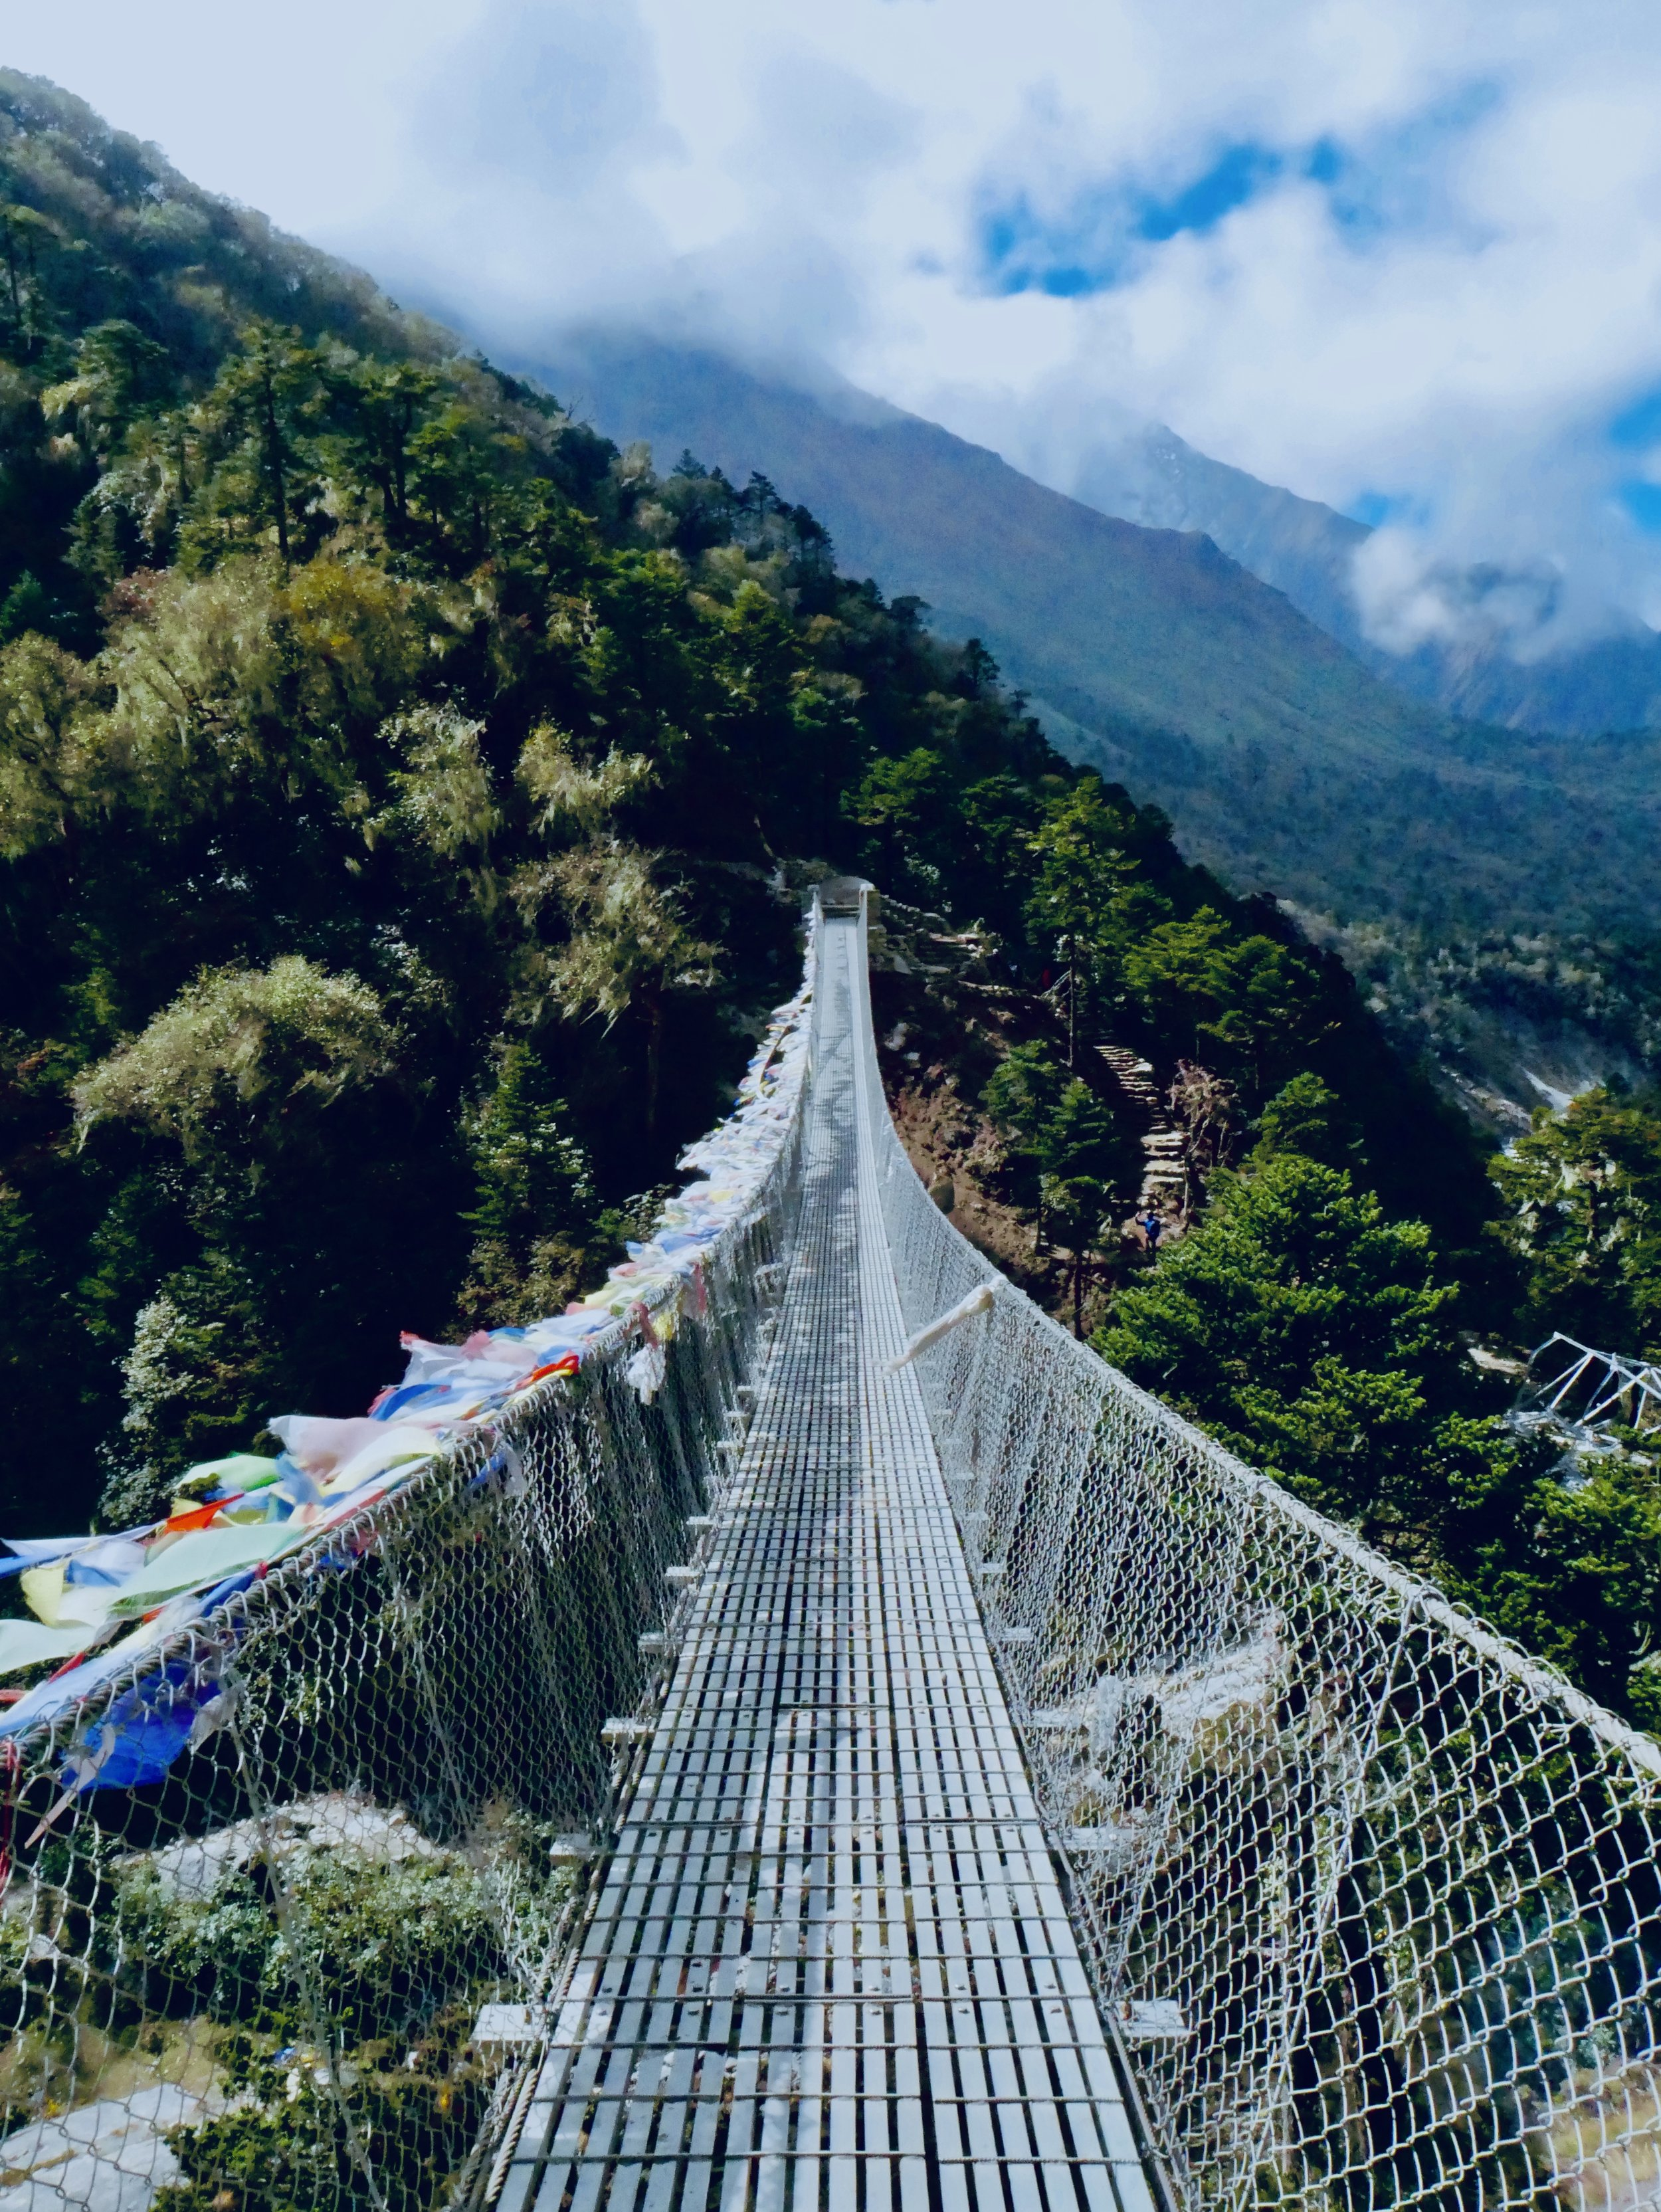 One of many suspension bridges in the Everest Region of Nepal on the way to Everest Base Camp